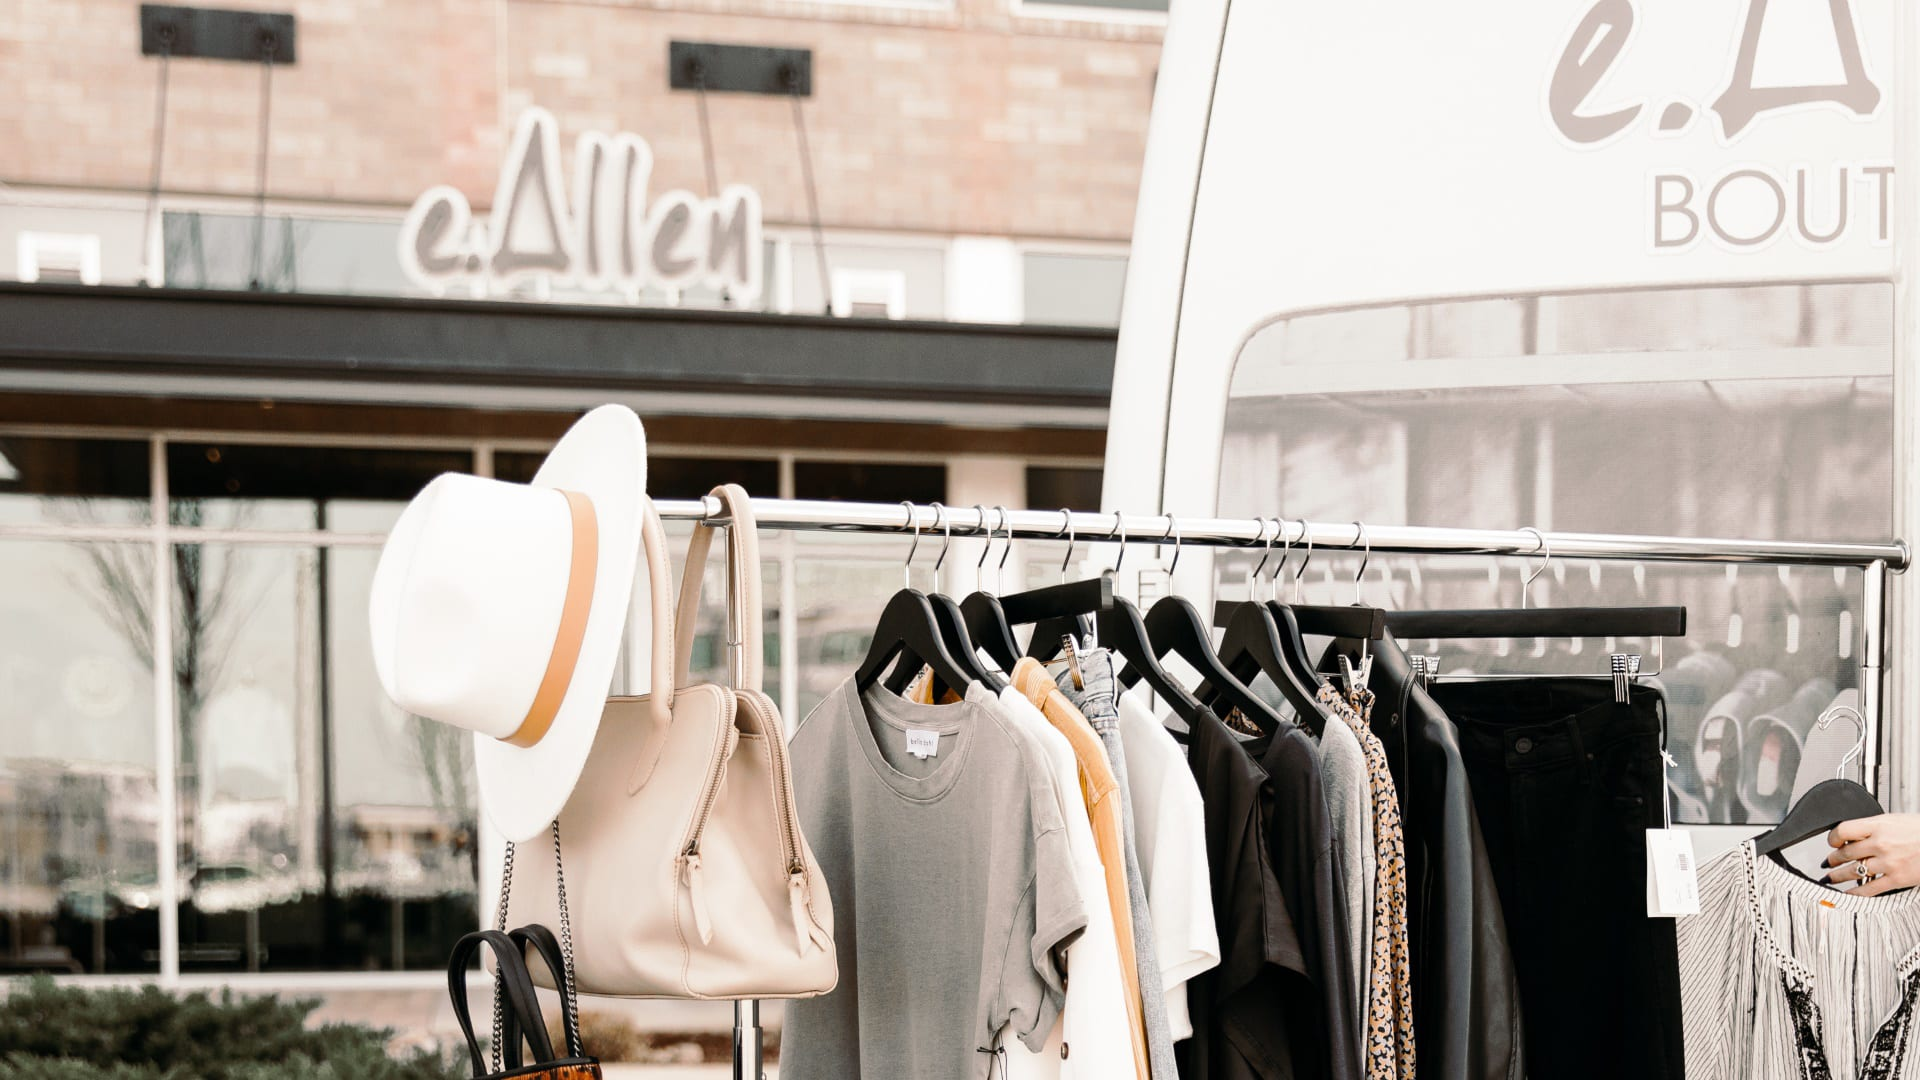 blog featured image 1920×1080 1 - e.Allen Boutique